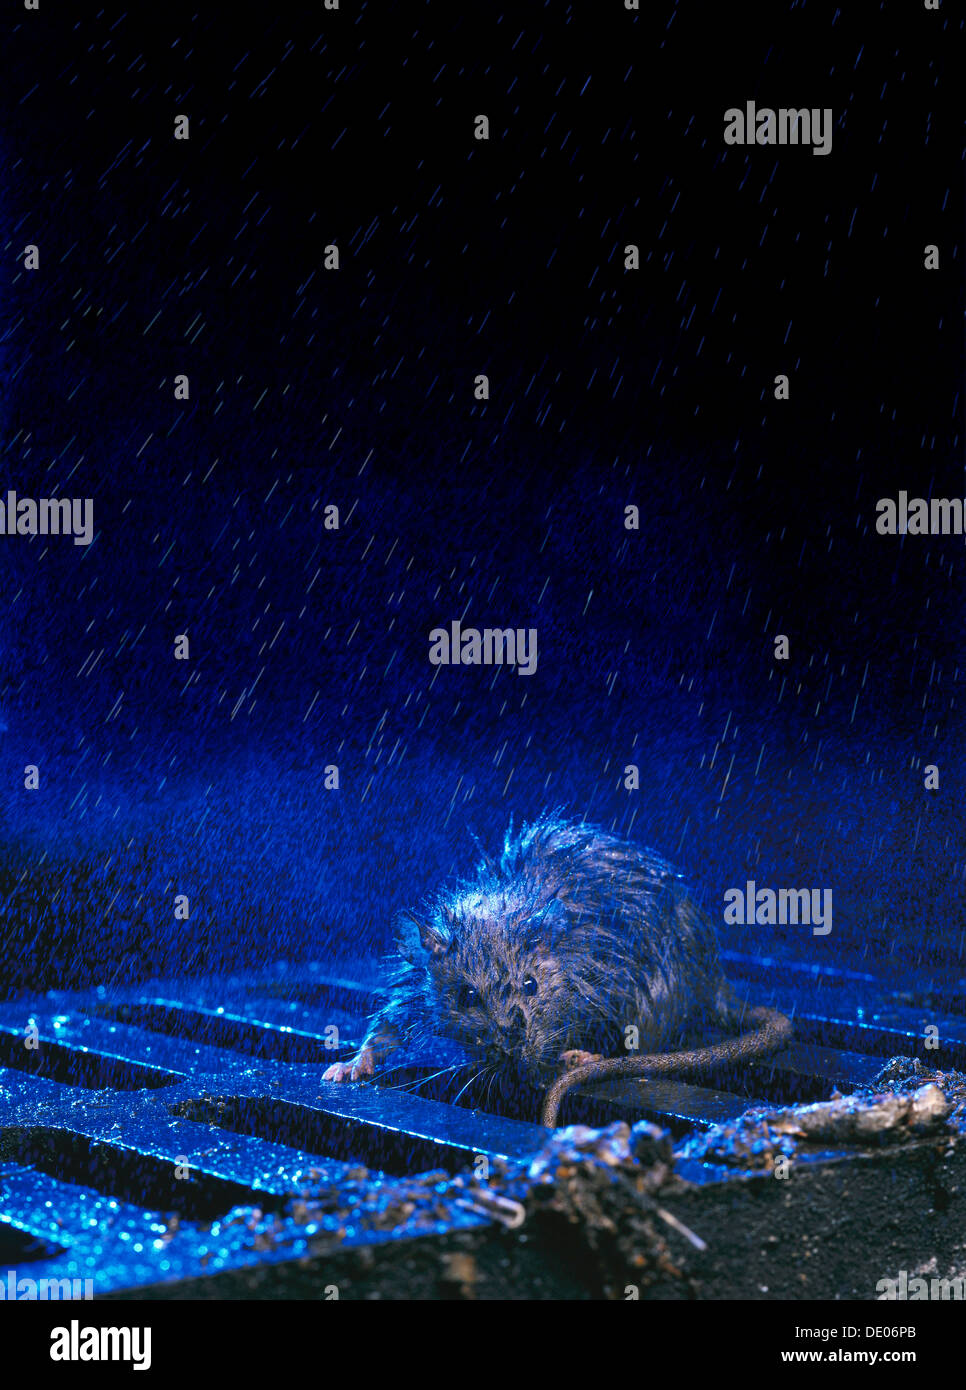 Brown Rat or Norway Rat (Rattus norvegicus) on a manhole cover in the rain at night - Stock Image